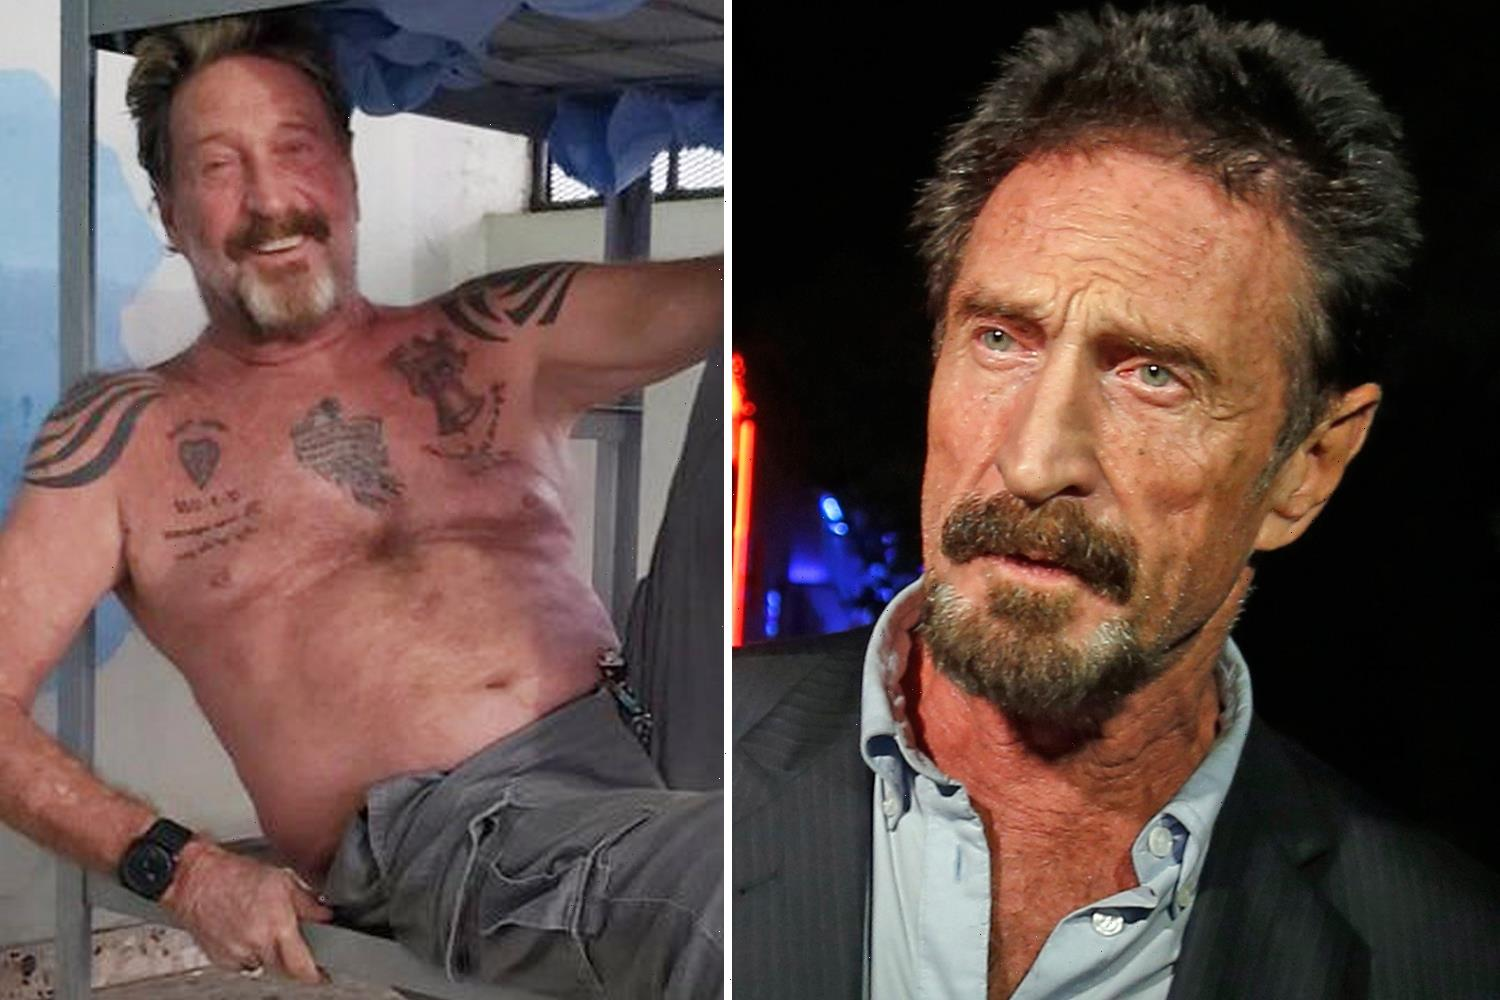 John McAfee was fascinated with 'quantum suicide' and tweeted about 'painless methods' before his jail death